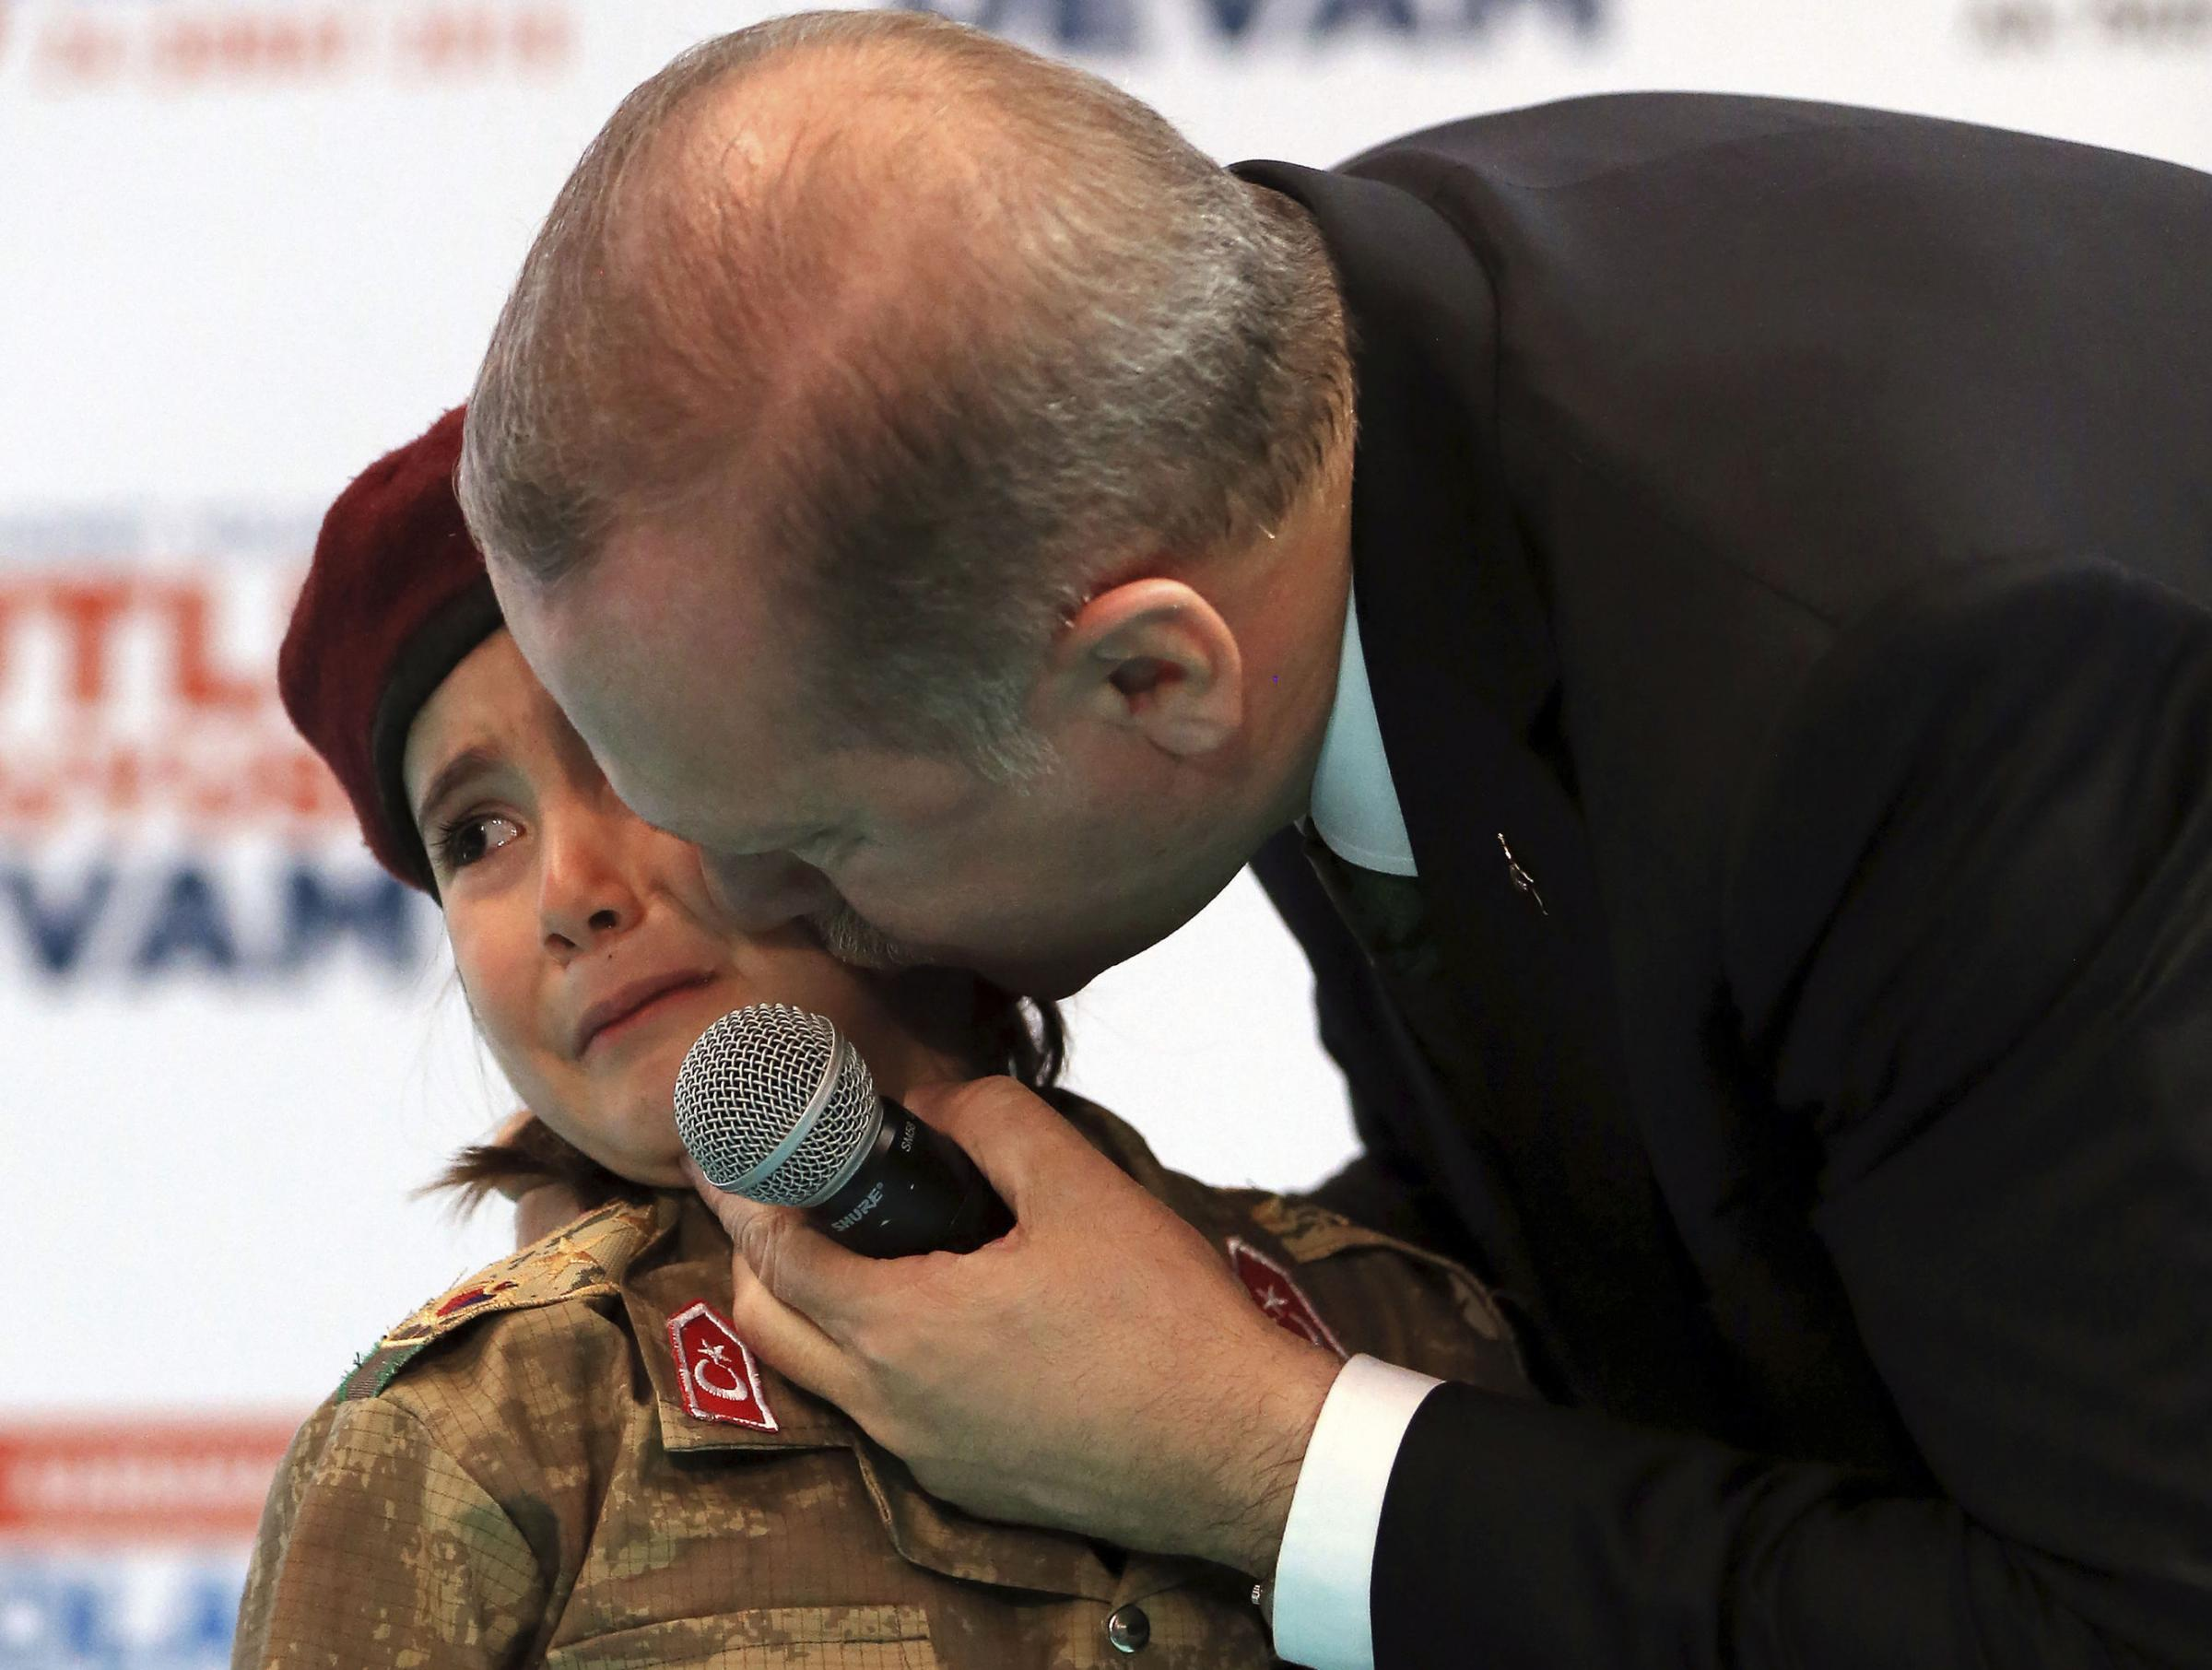 Turkish President Recep Tayyip Erdogan kisses Amine Tiras, a young girl in military uniform, as he speaks to his ruling party members in Kahramanmaras, Turkey